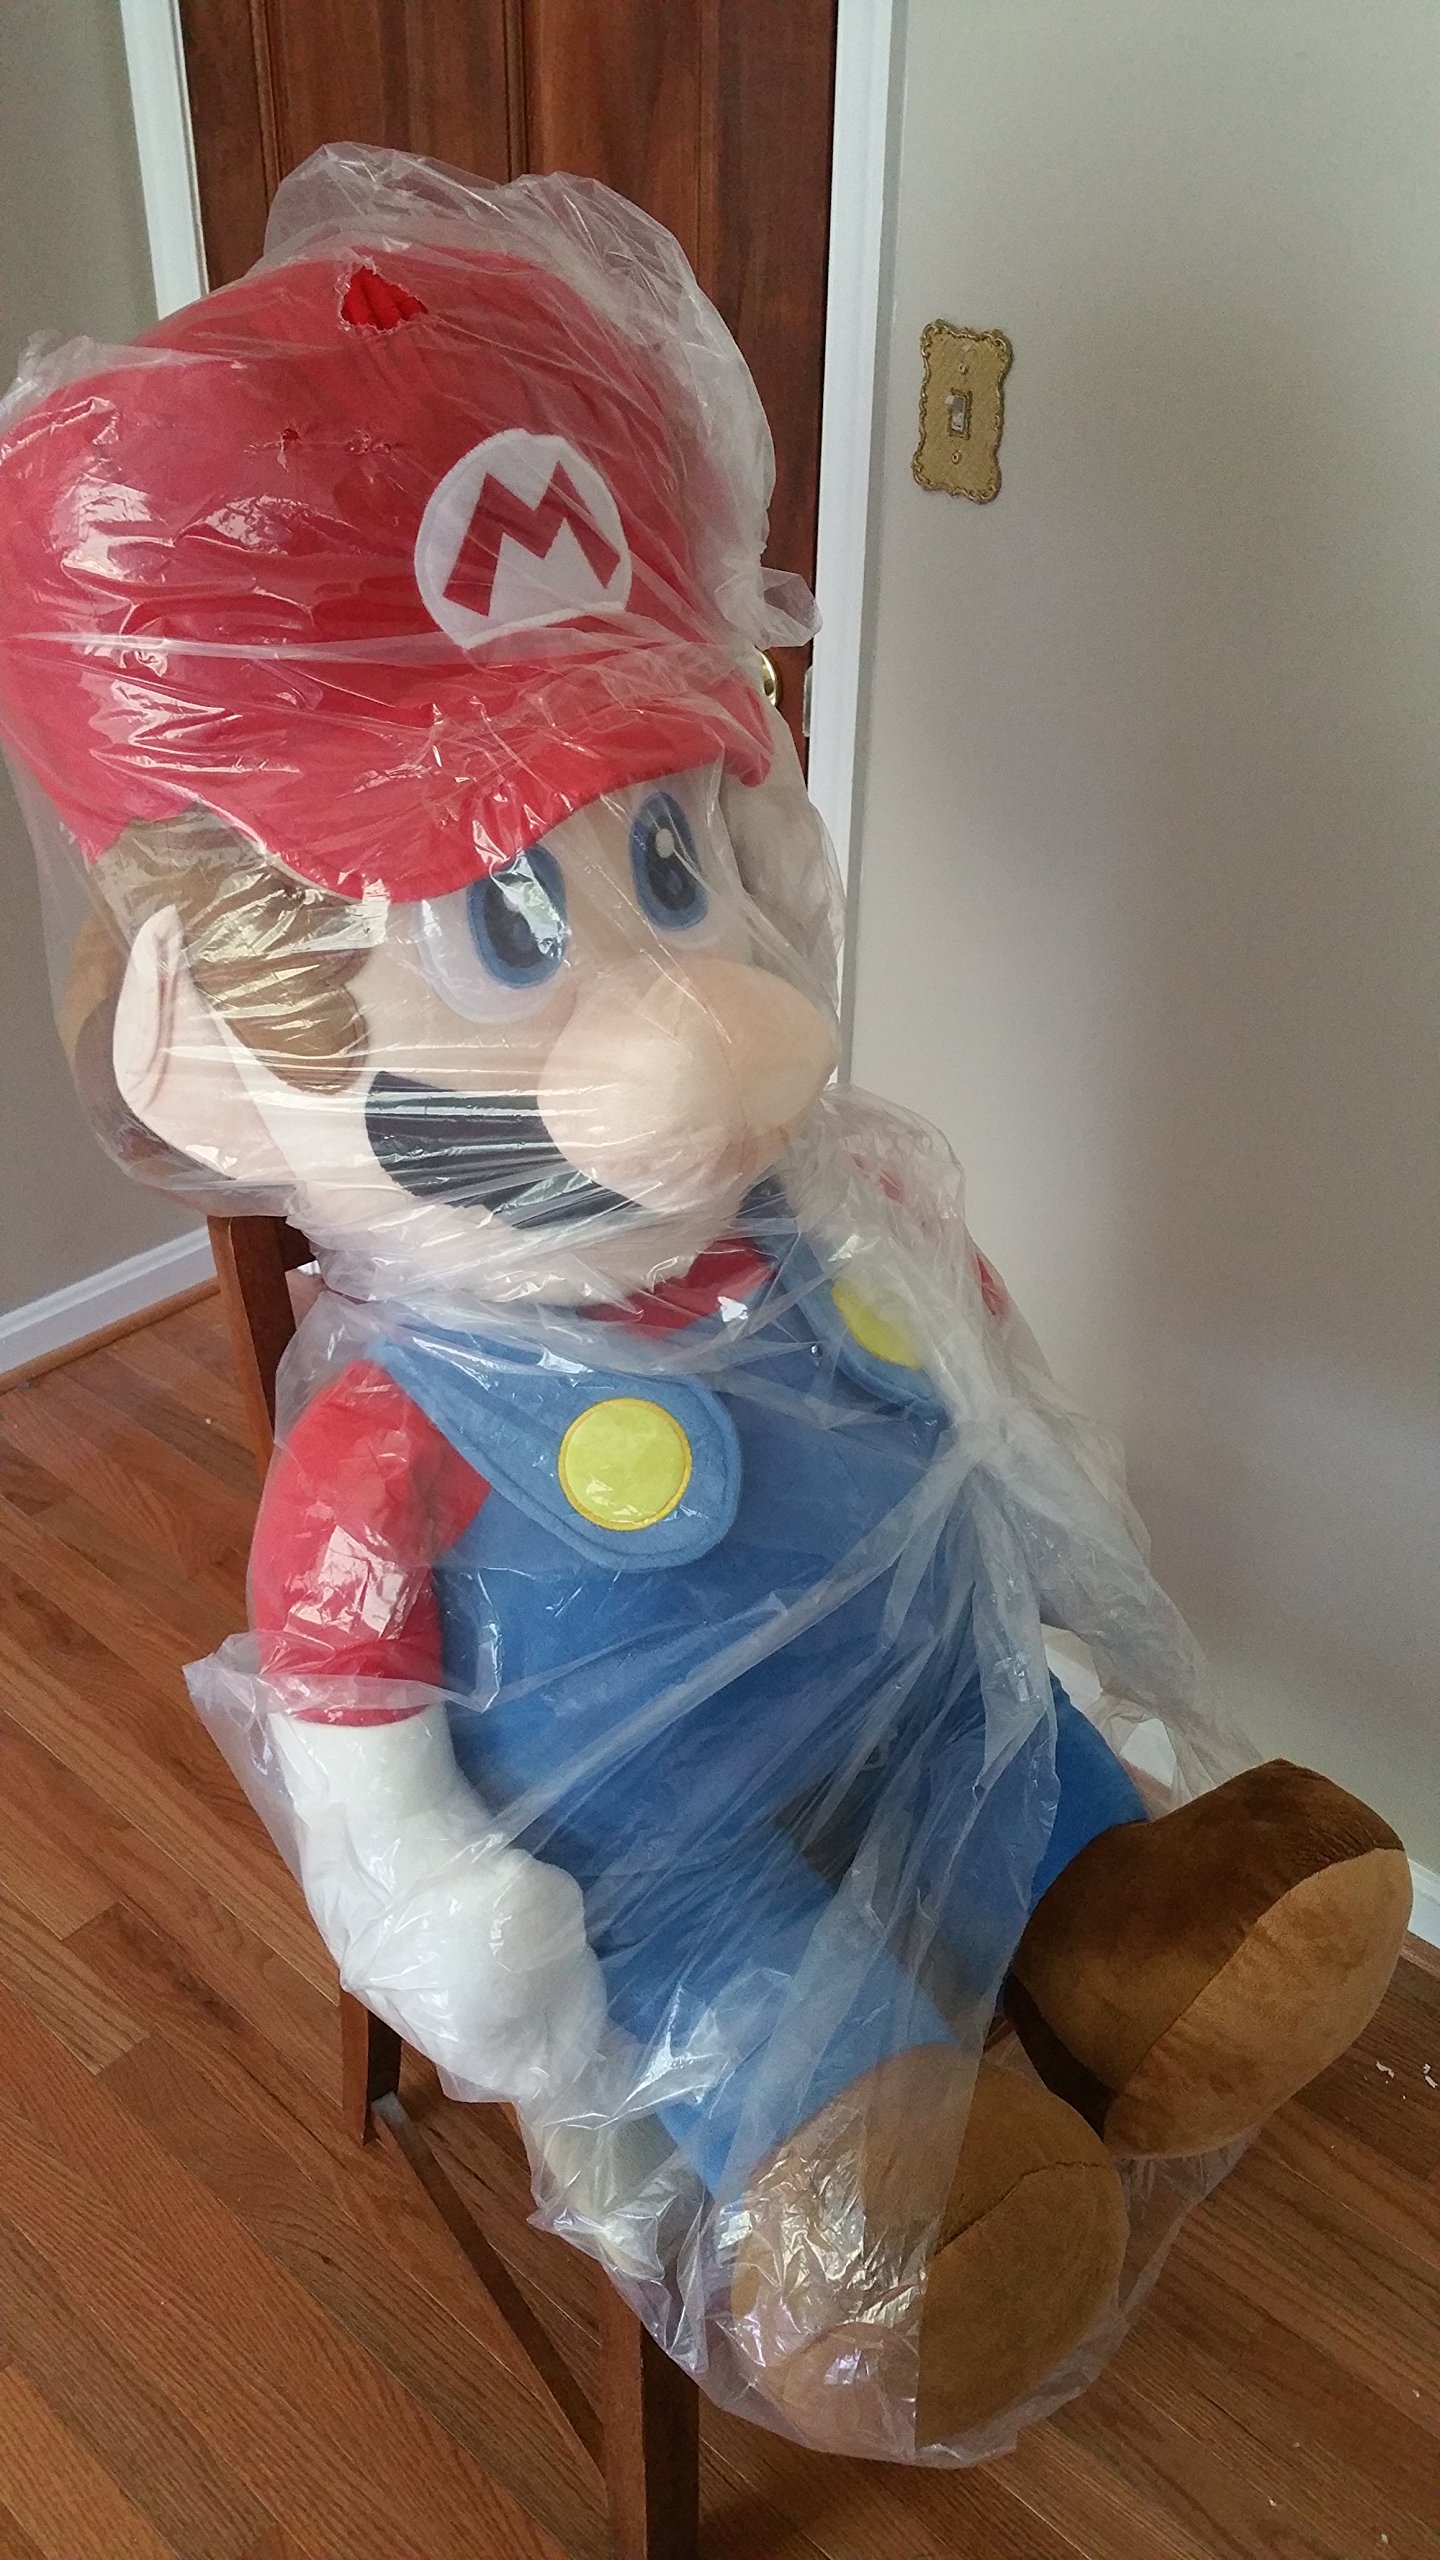 Authentic Nintendo Licensed Life Size 48'' Super Mario Plush Collectible Toy by Nintendo